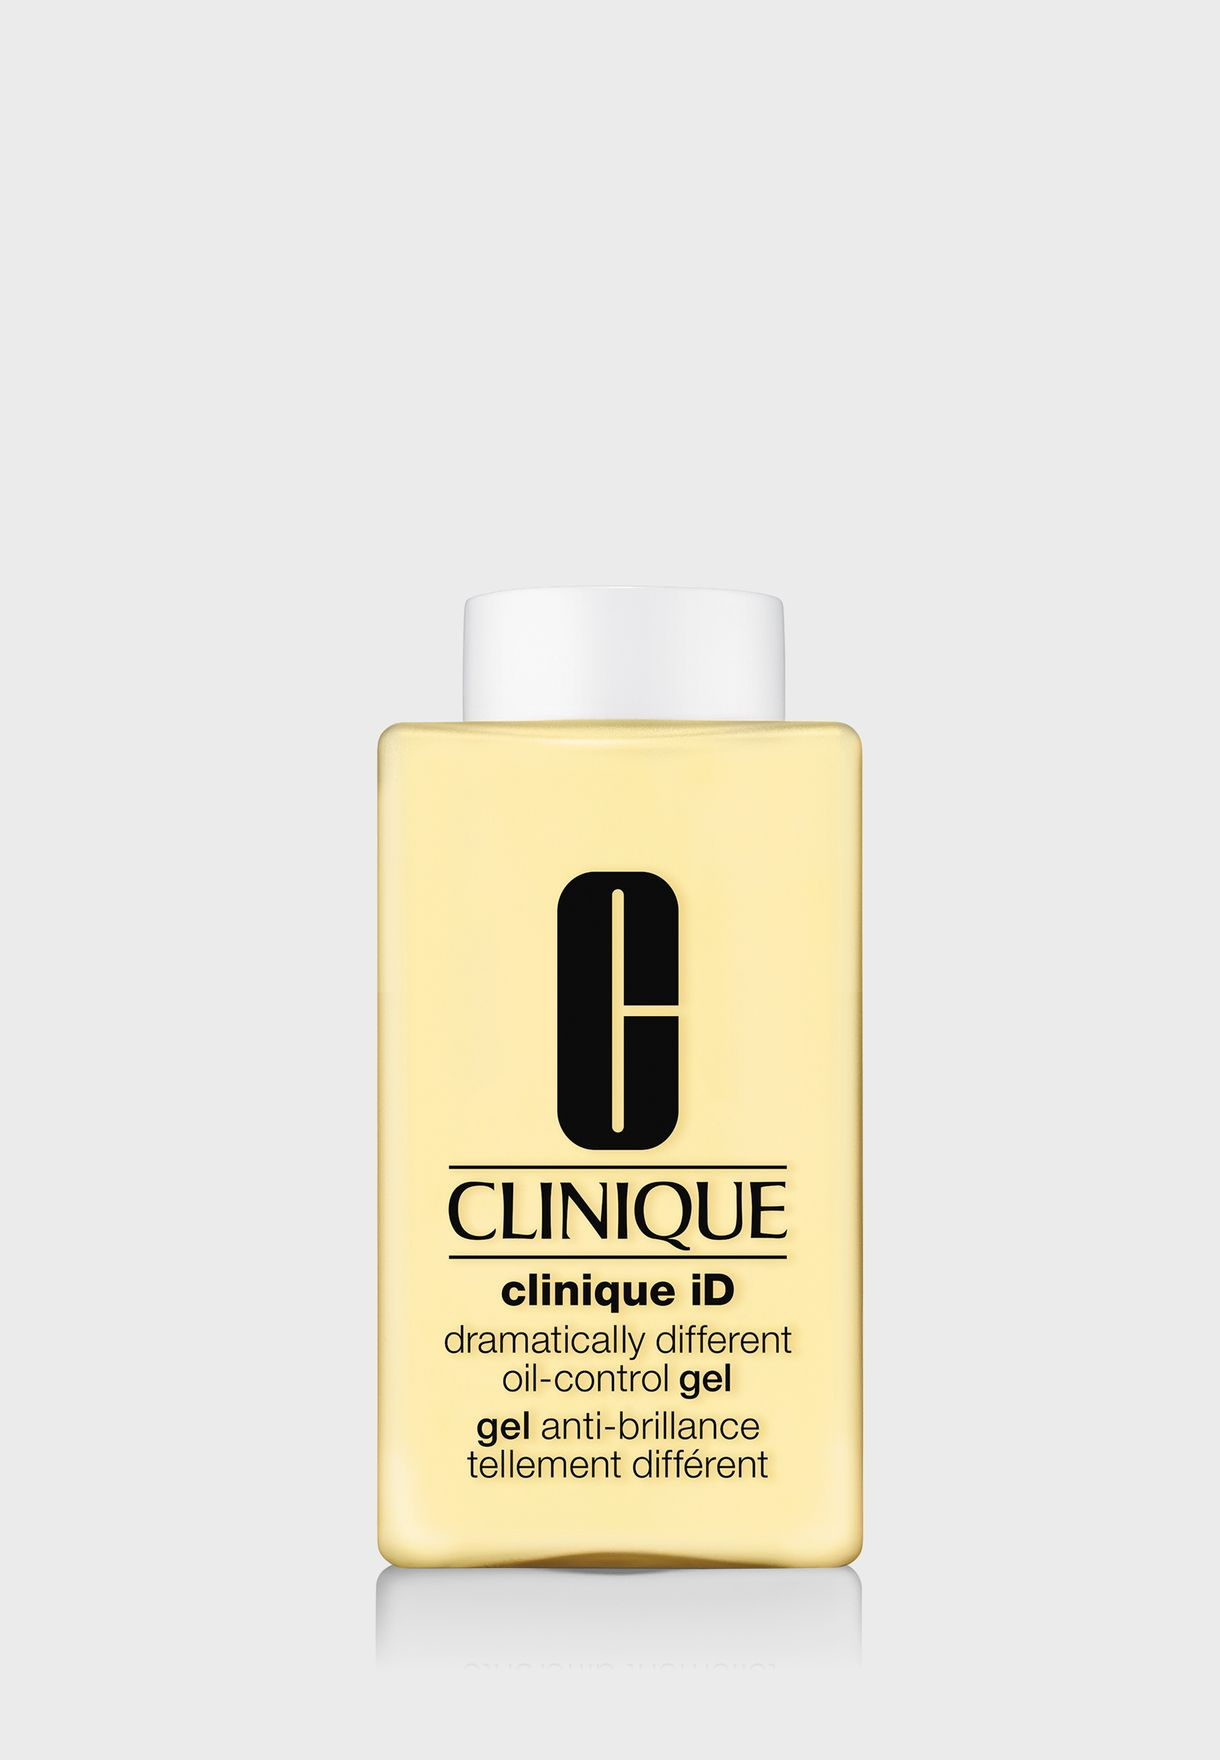 Clinique ID Oil-control Gel for Uneven Skin Tone